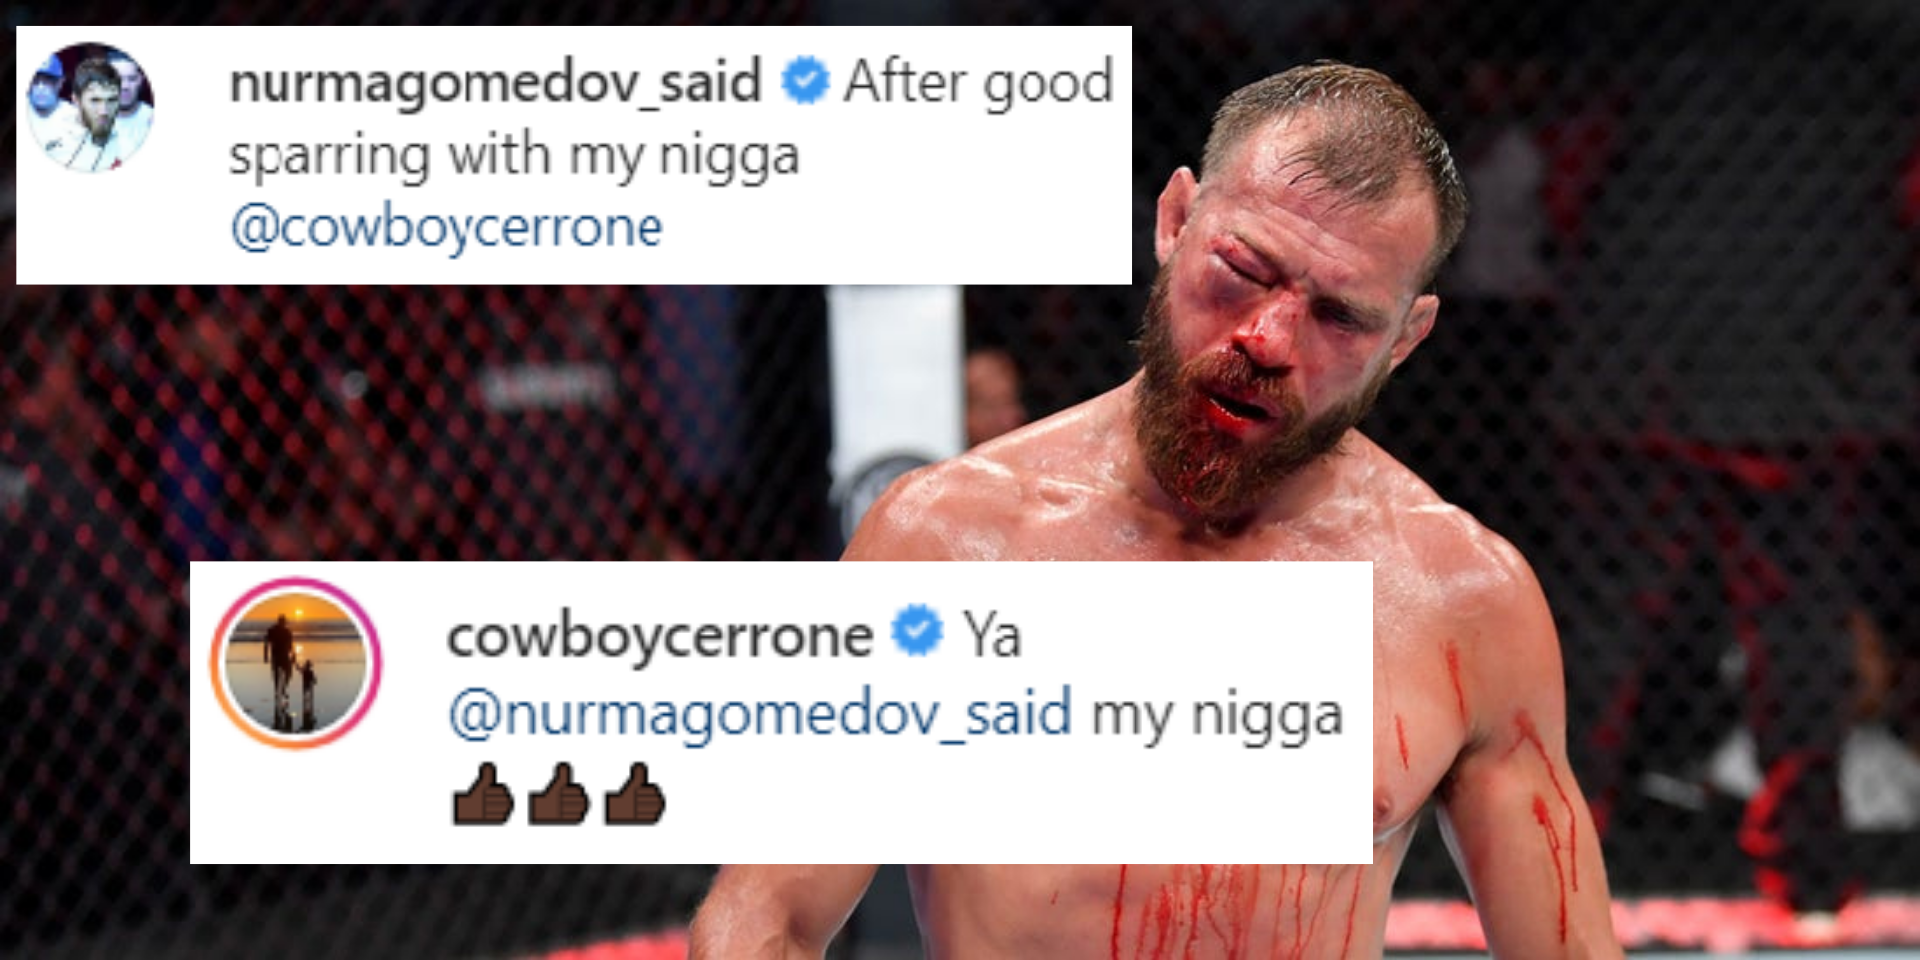 Cowboy Cerrone and Said Nurmagomedov refer to each other as 'my ni**a' after a sparring session - Nurmagomedov